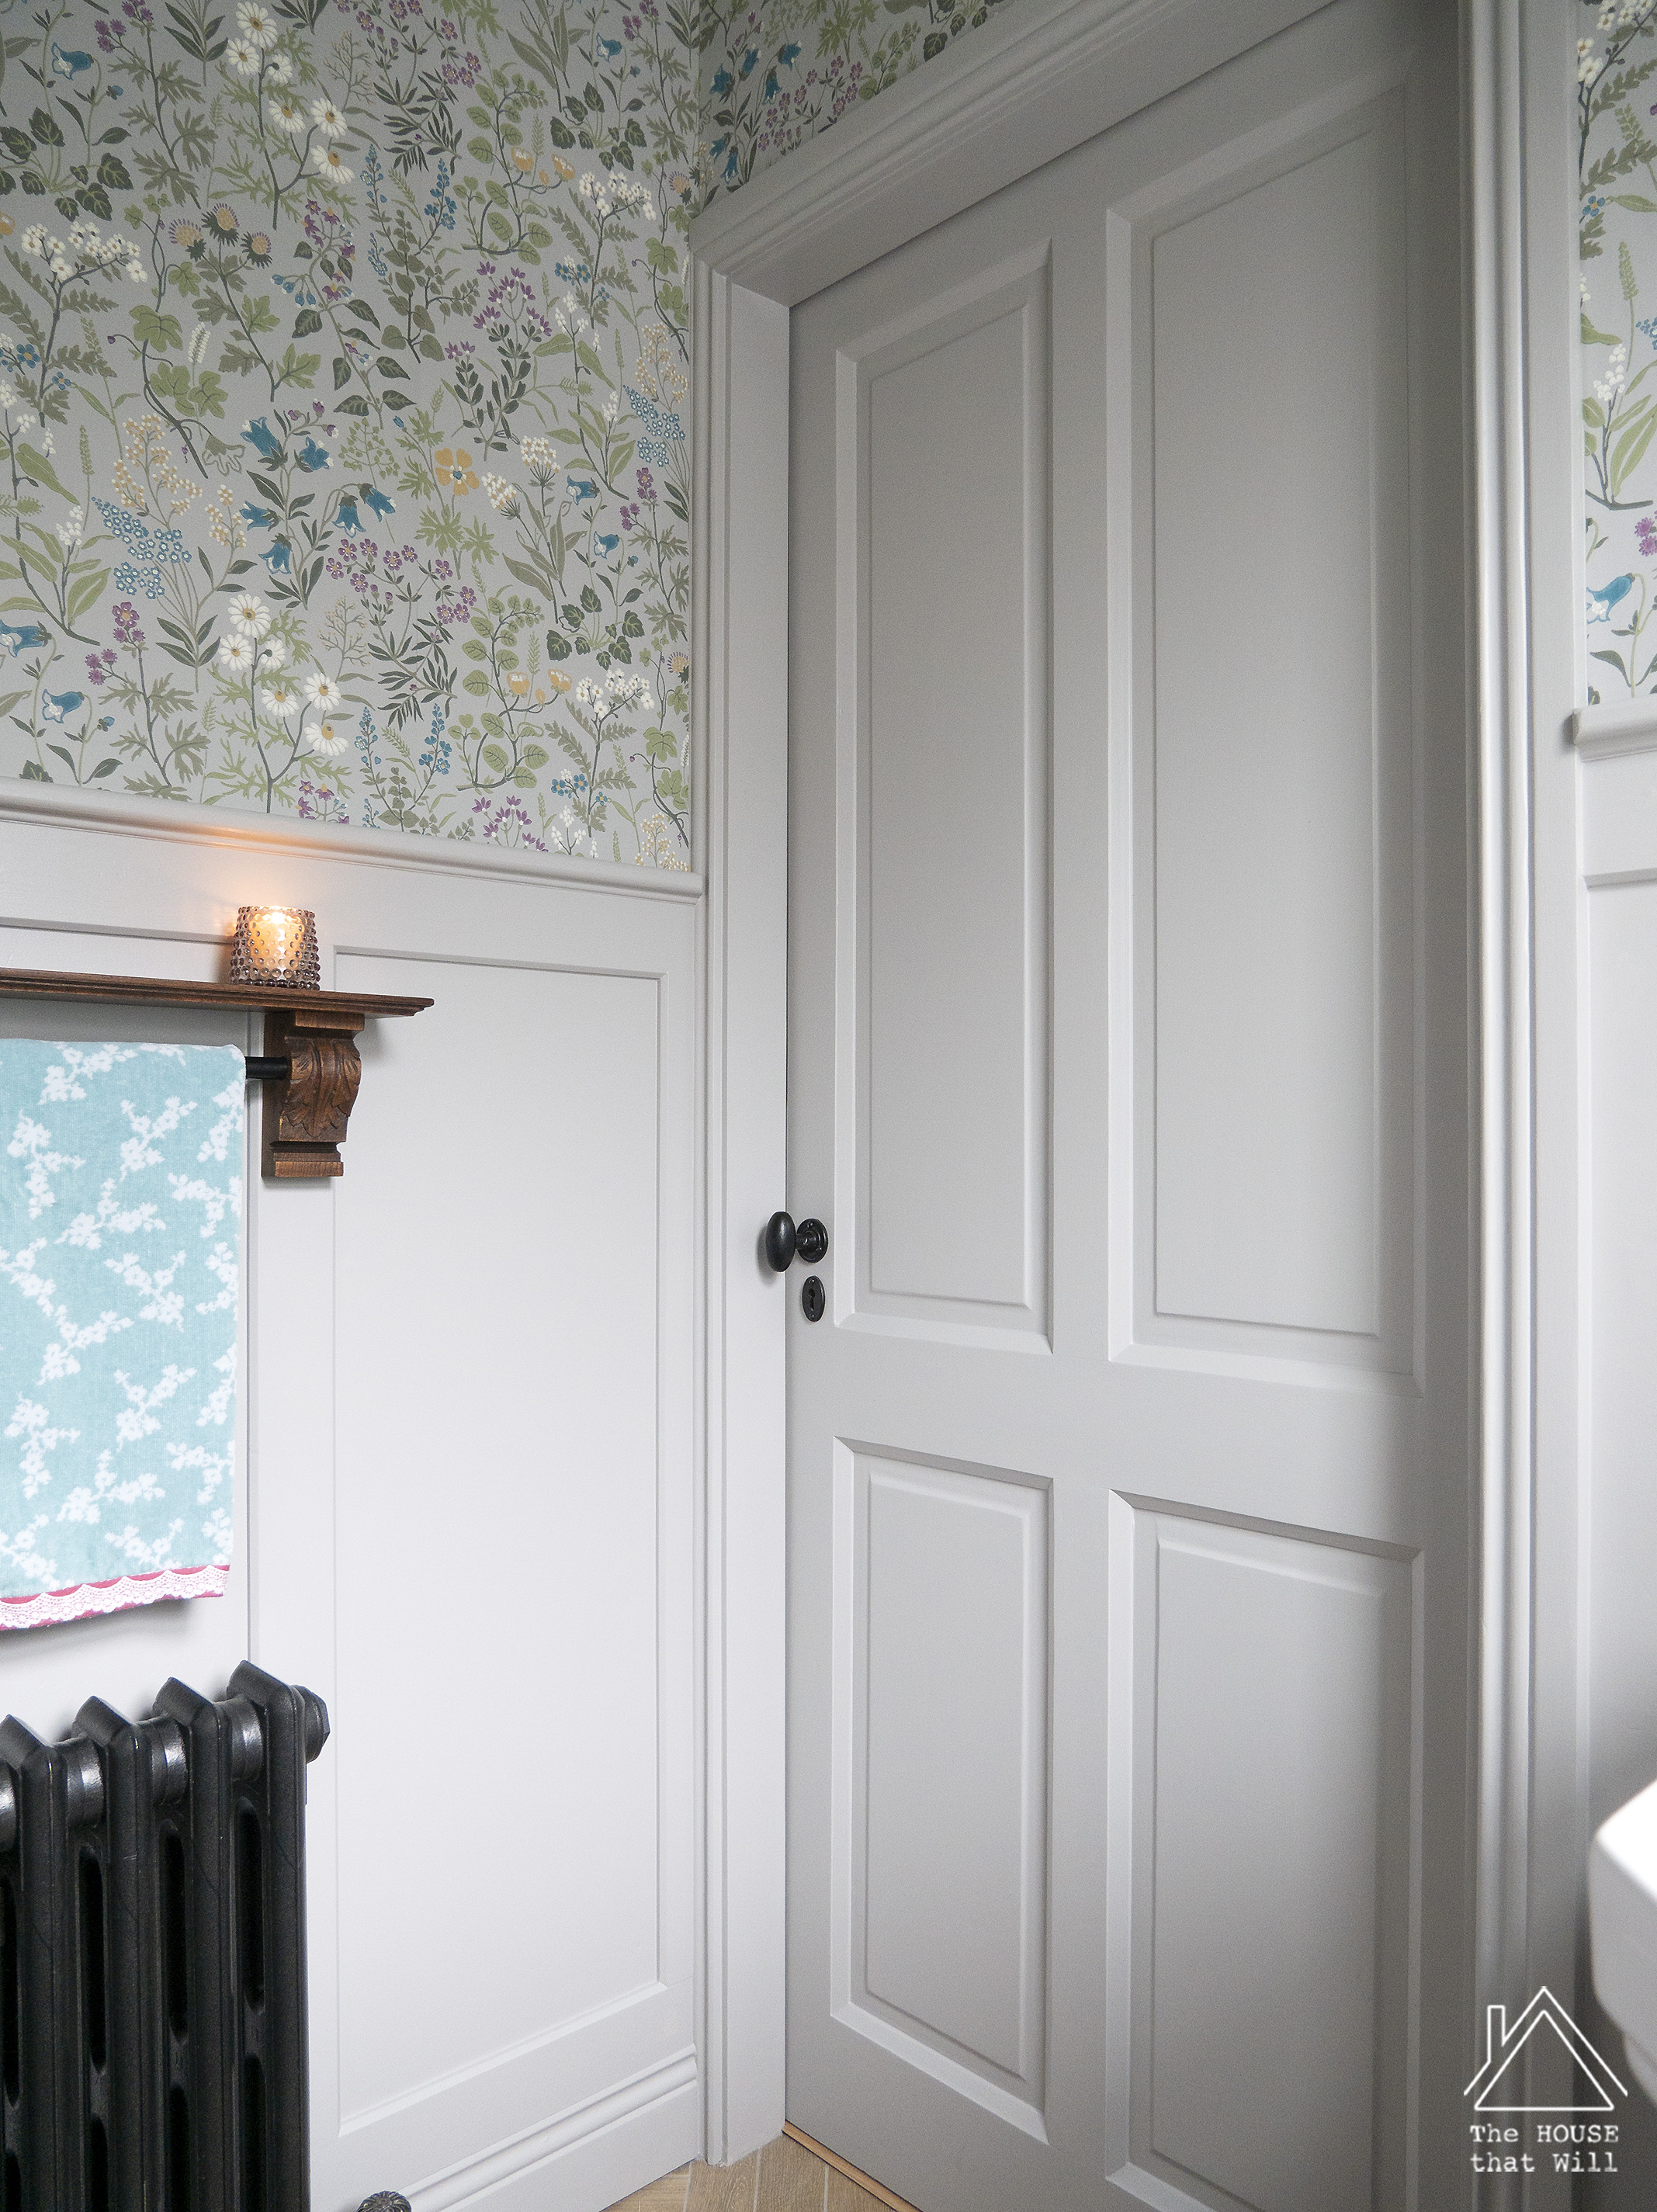 The House that Will | Downstairs Loo Powder Room Half Bath Room Reveal (One Room Challenge)